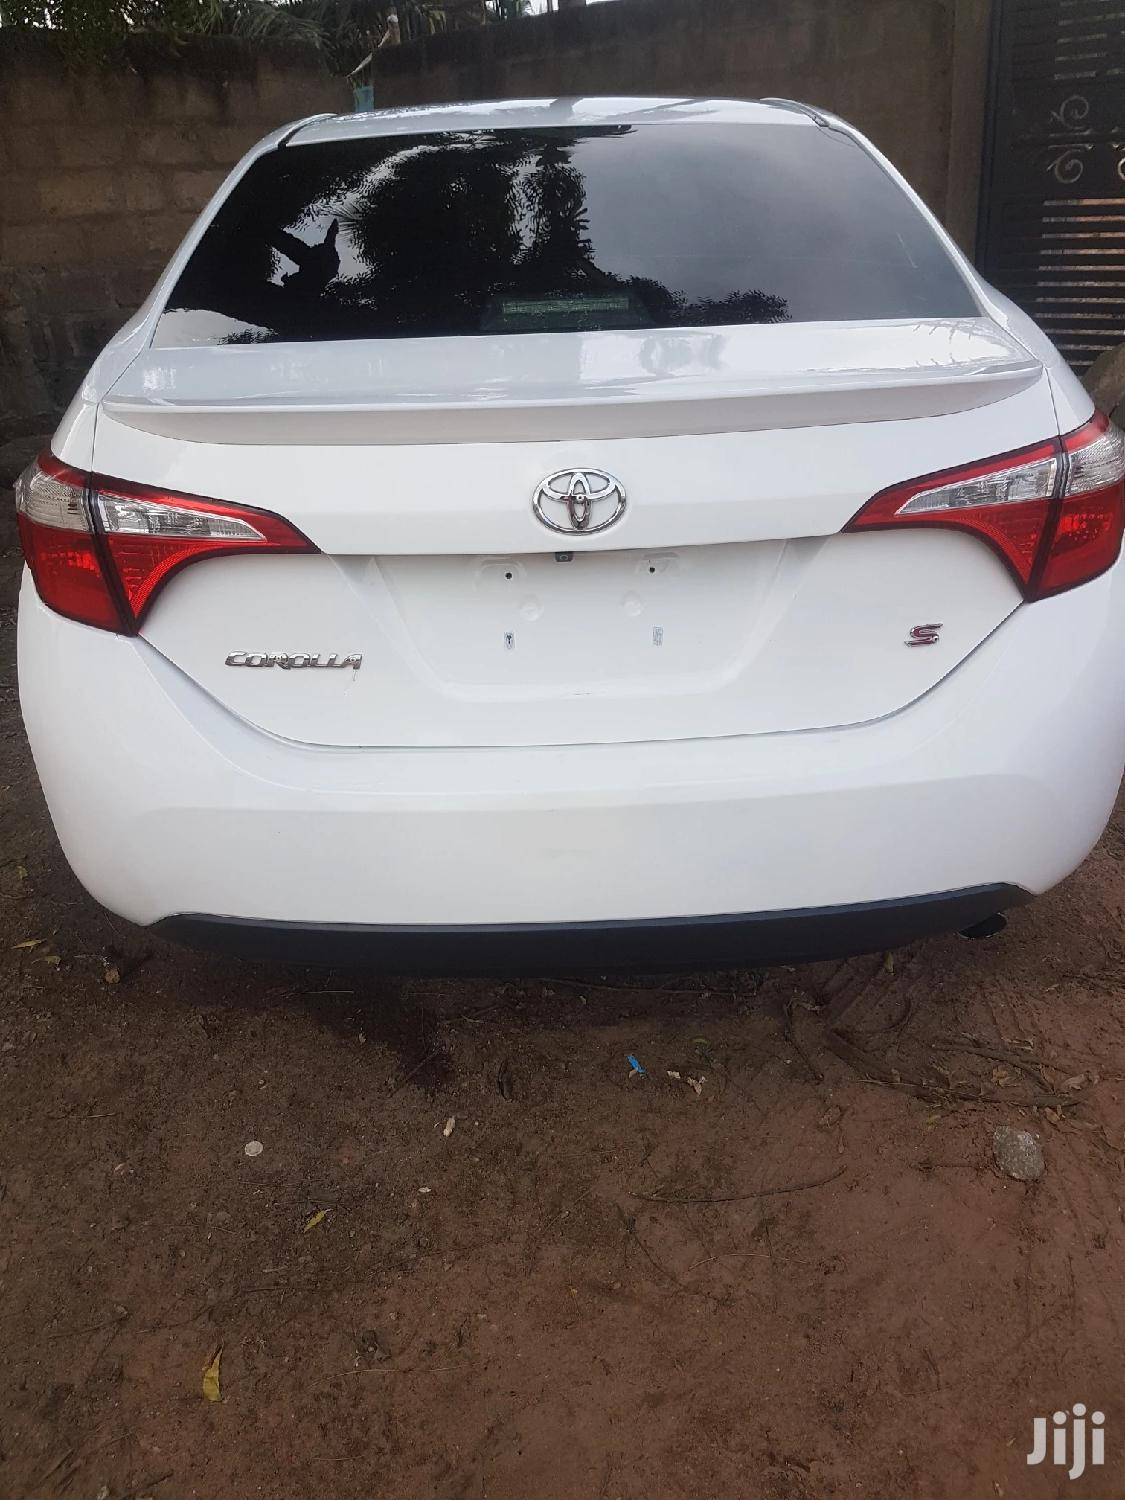 Toyota Corolla 2014 White | Cars for sale in Ga West Municipal, Greater Accra, Ghana